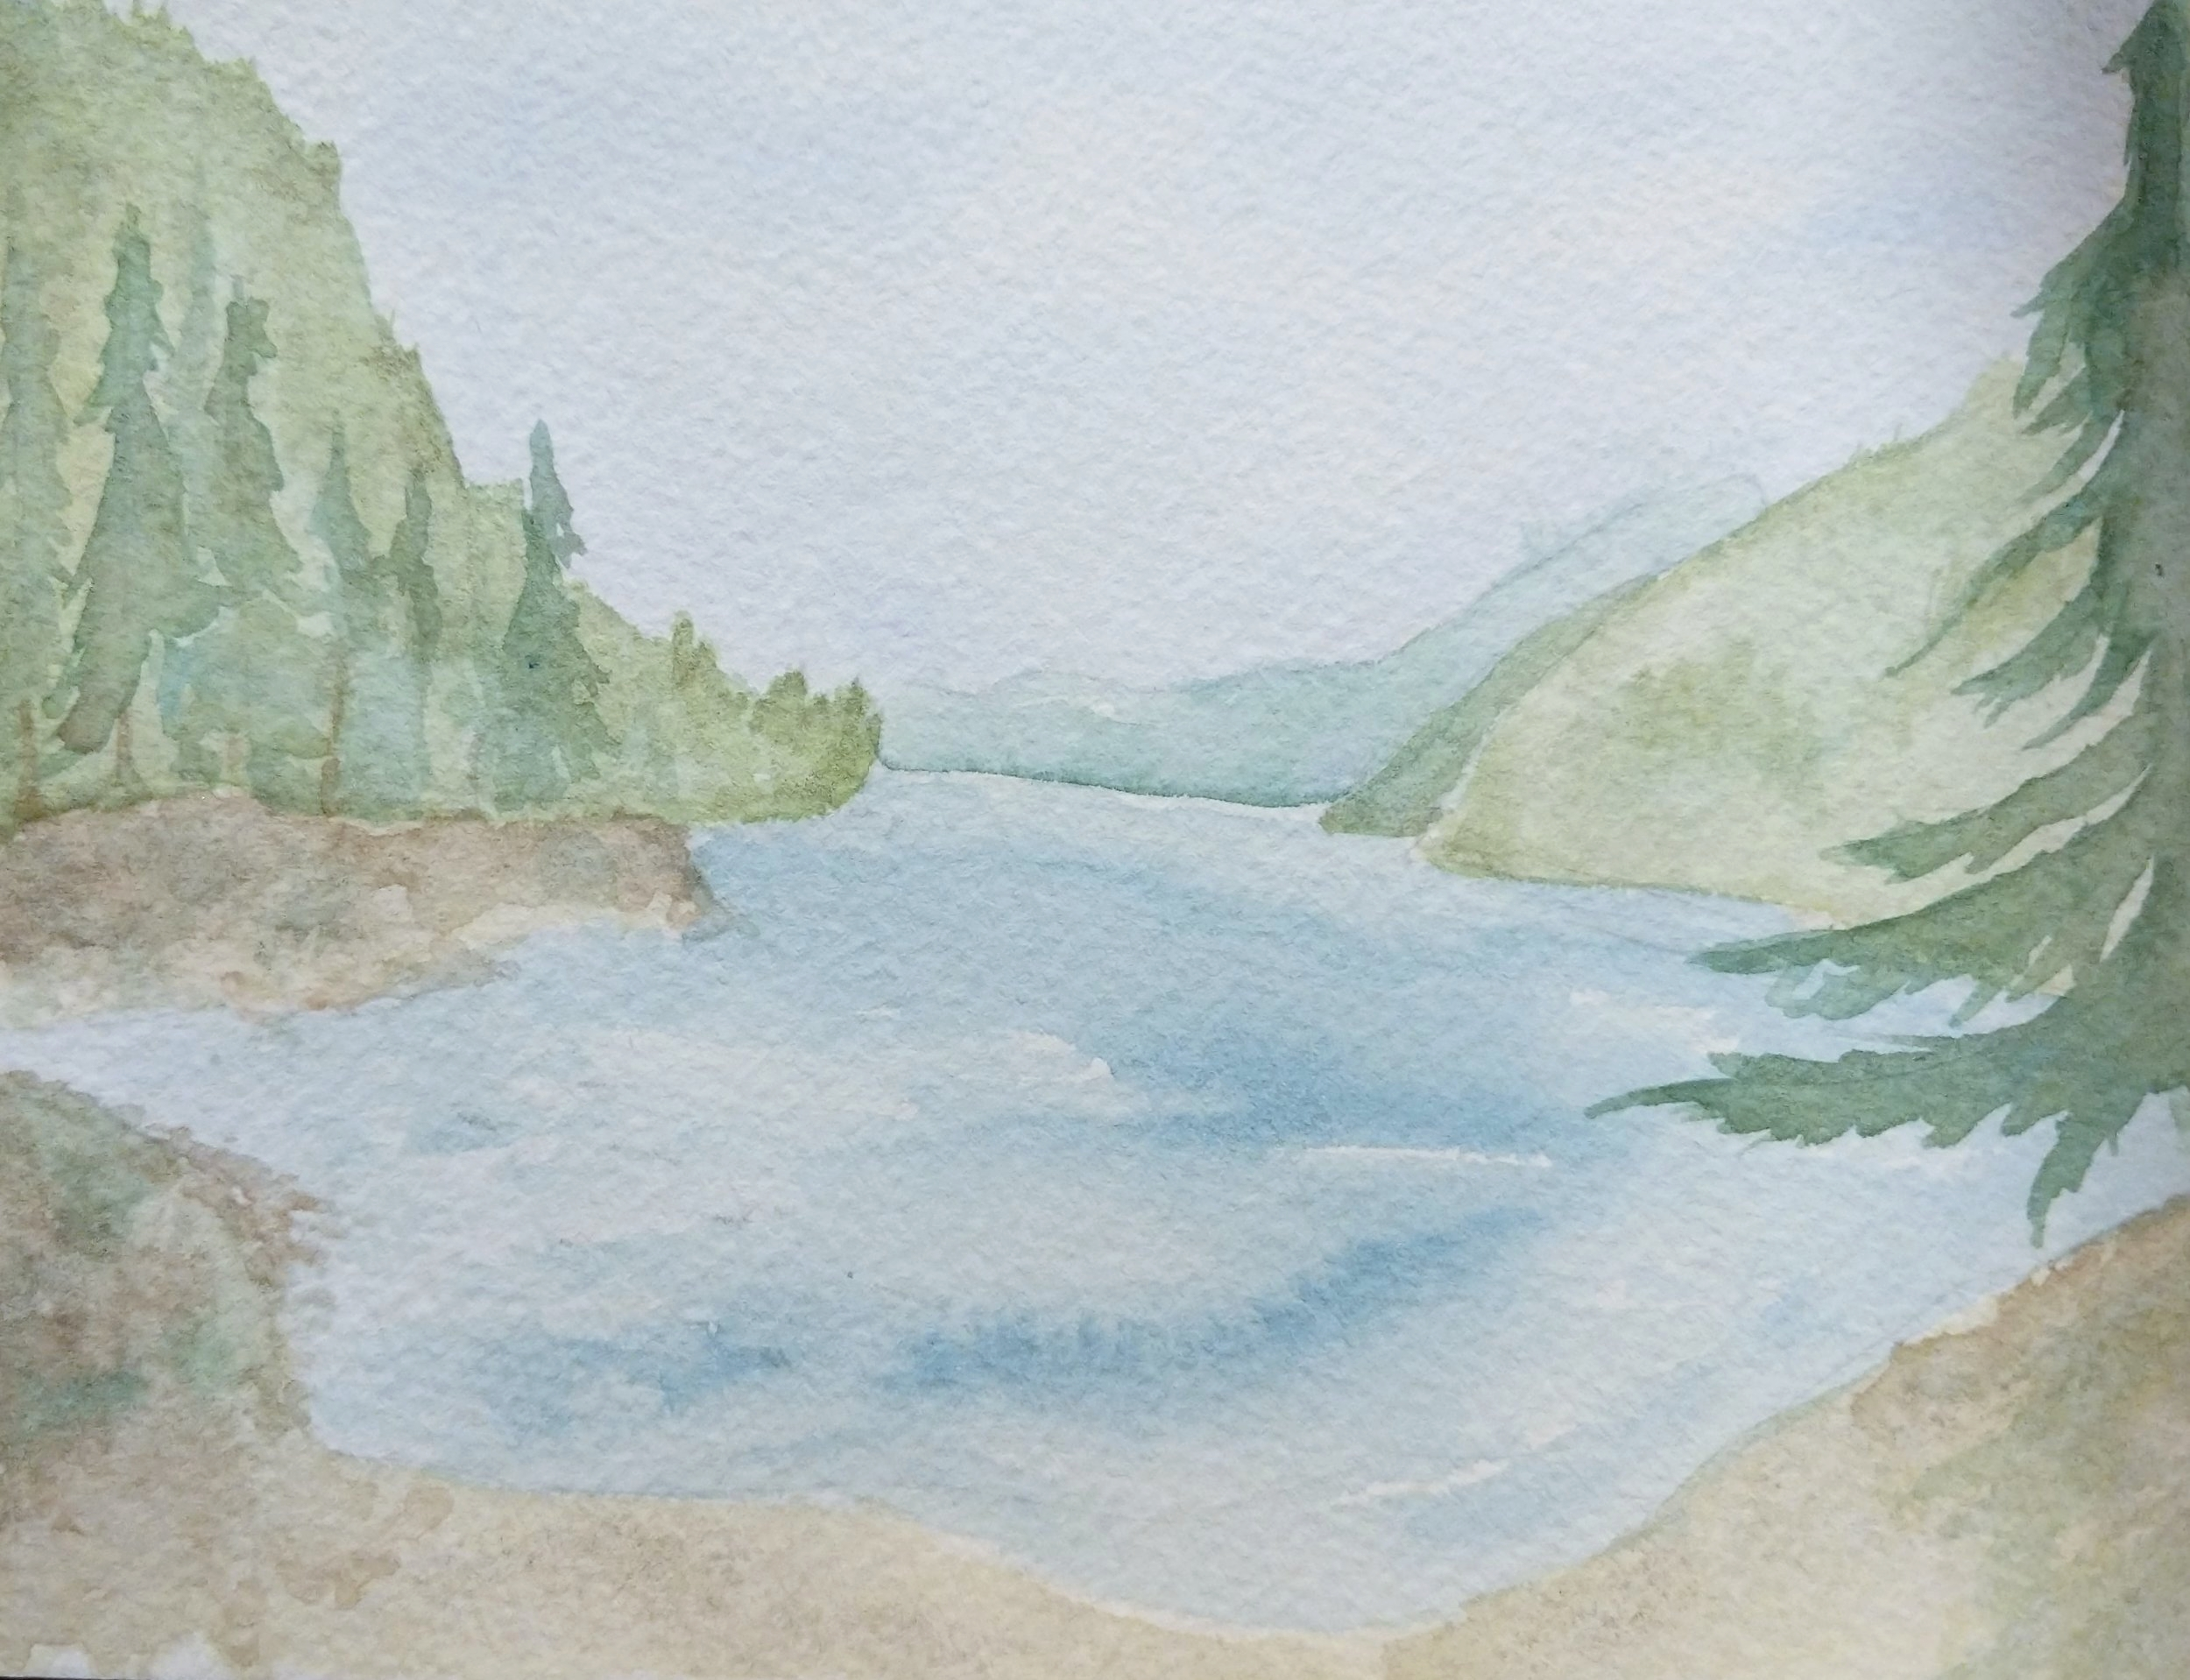 Watercolor painting sketch - Wolf Camp